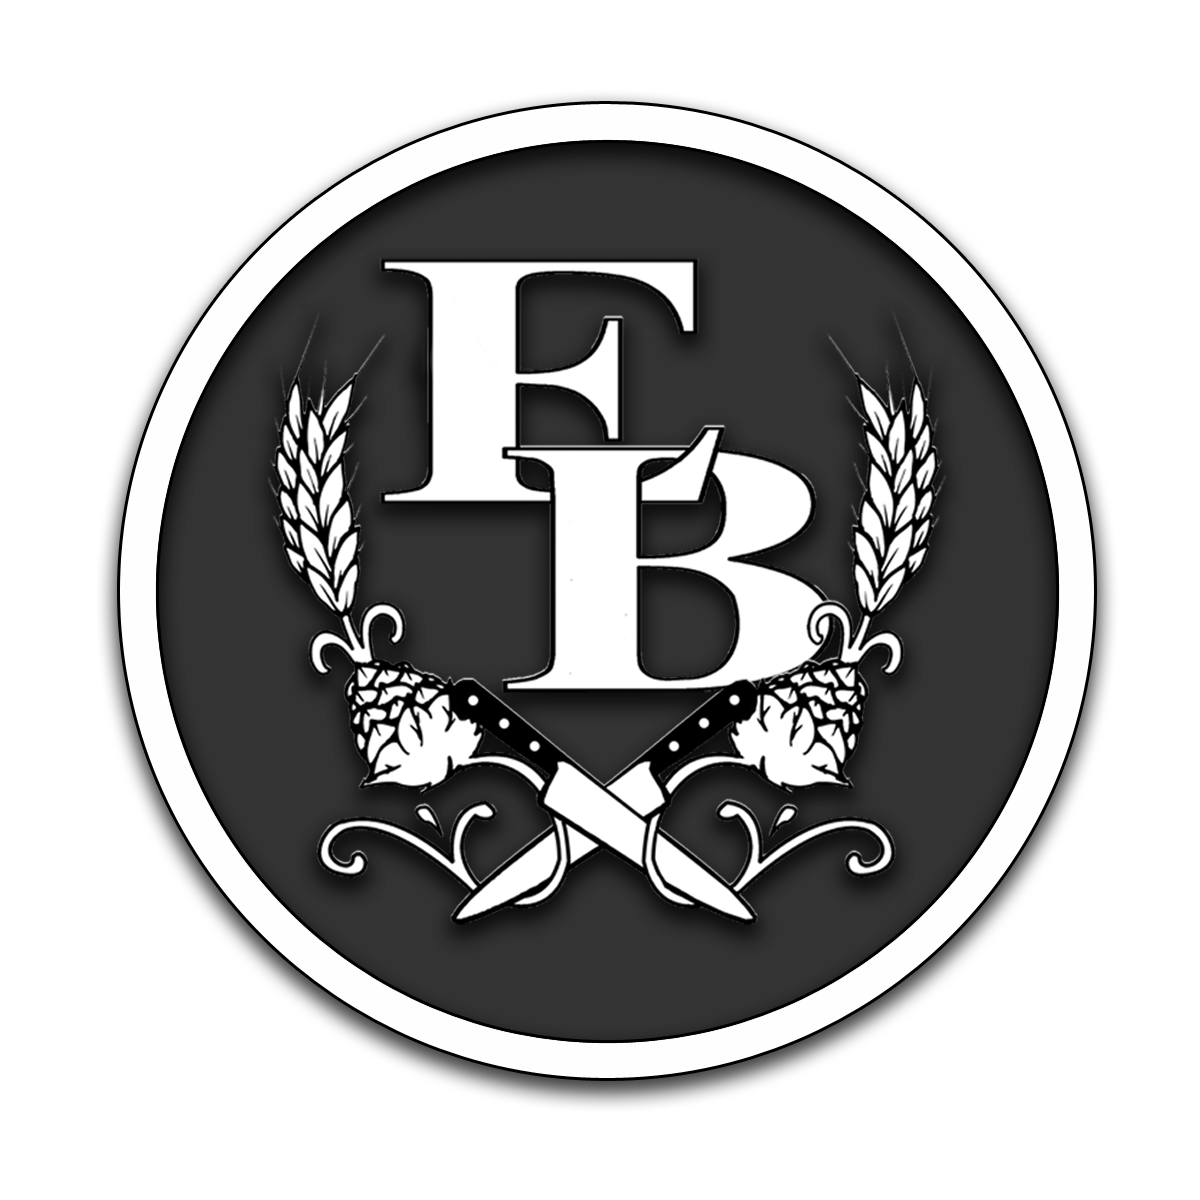 eastburn logo, EastBurn, happy hour, brunch, dinner, date spot, best bar Portland, best happy hour, live music, pdx, best food Portland, beer, wine, whiskey, patio, games, beer belly